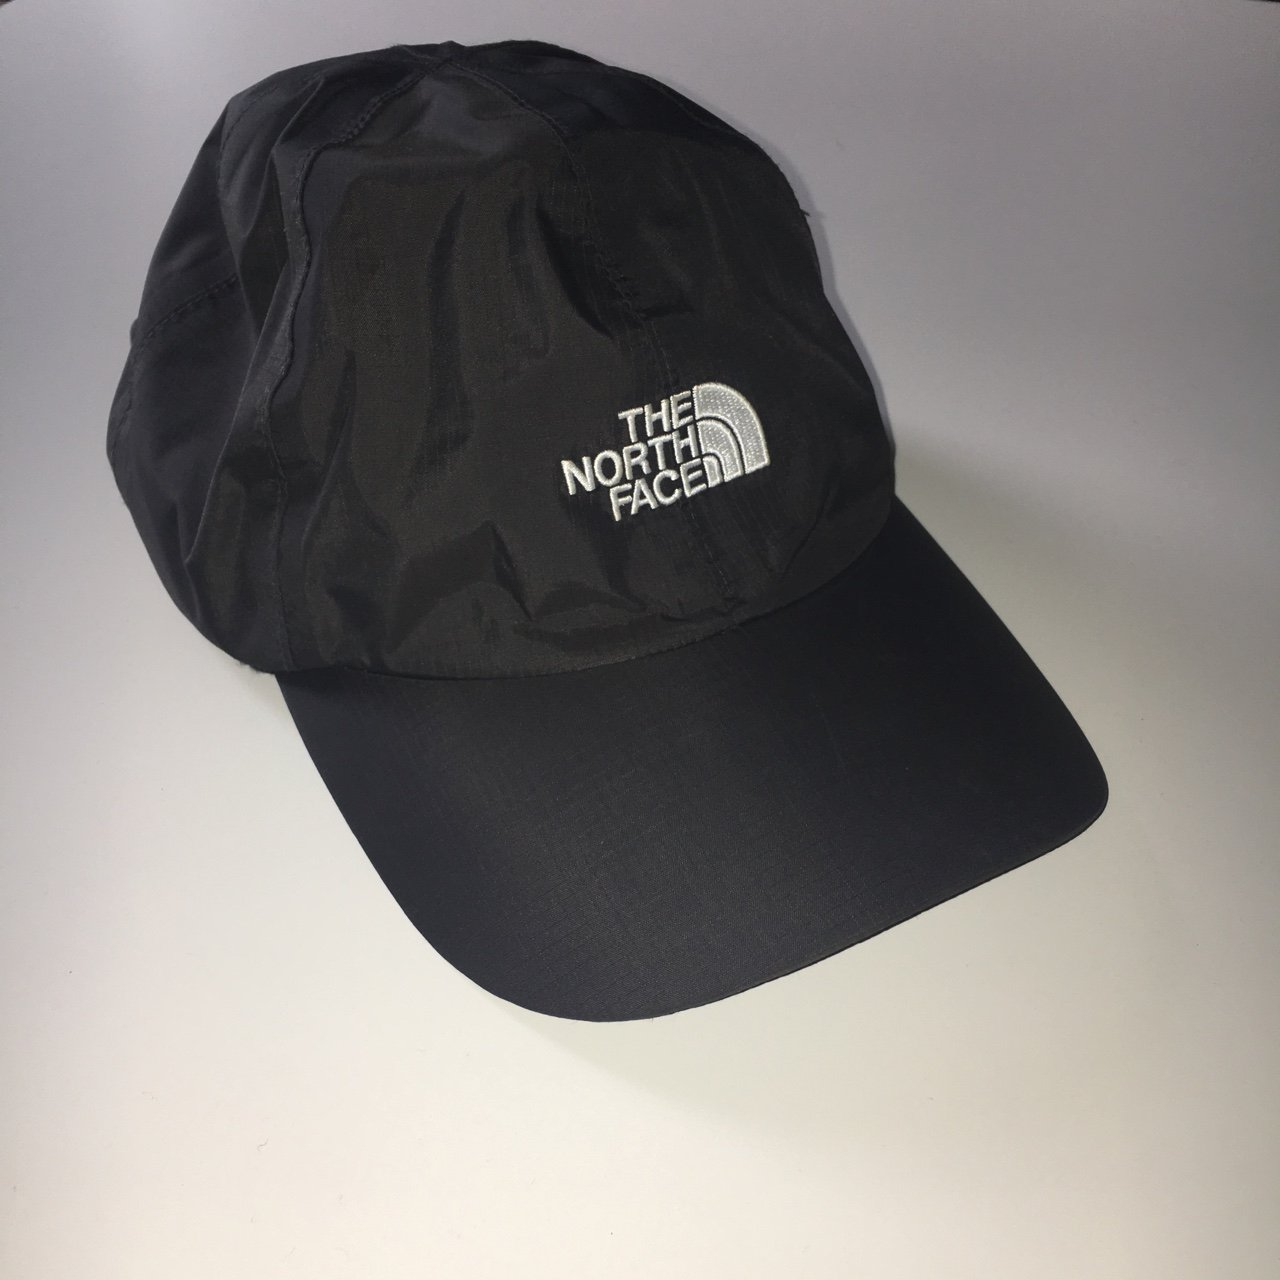 Northface Dry-vent cap. One size fits all so adjustable. no - Depop 32624d1135b2